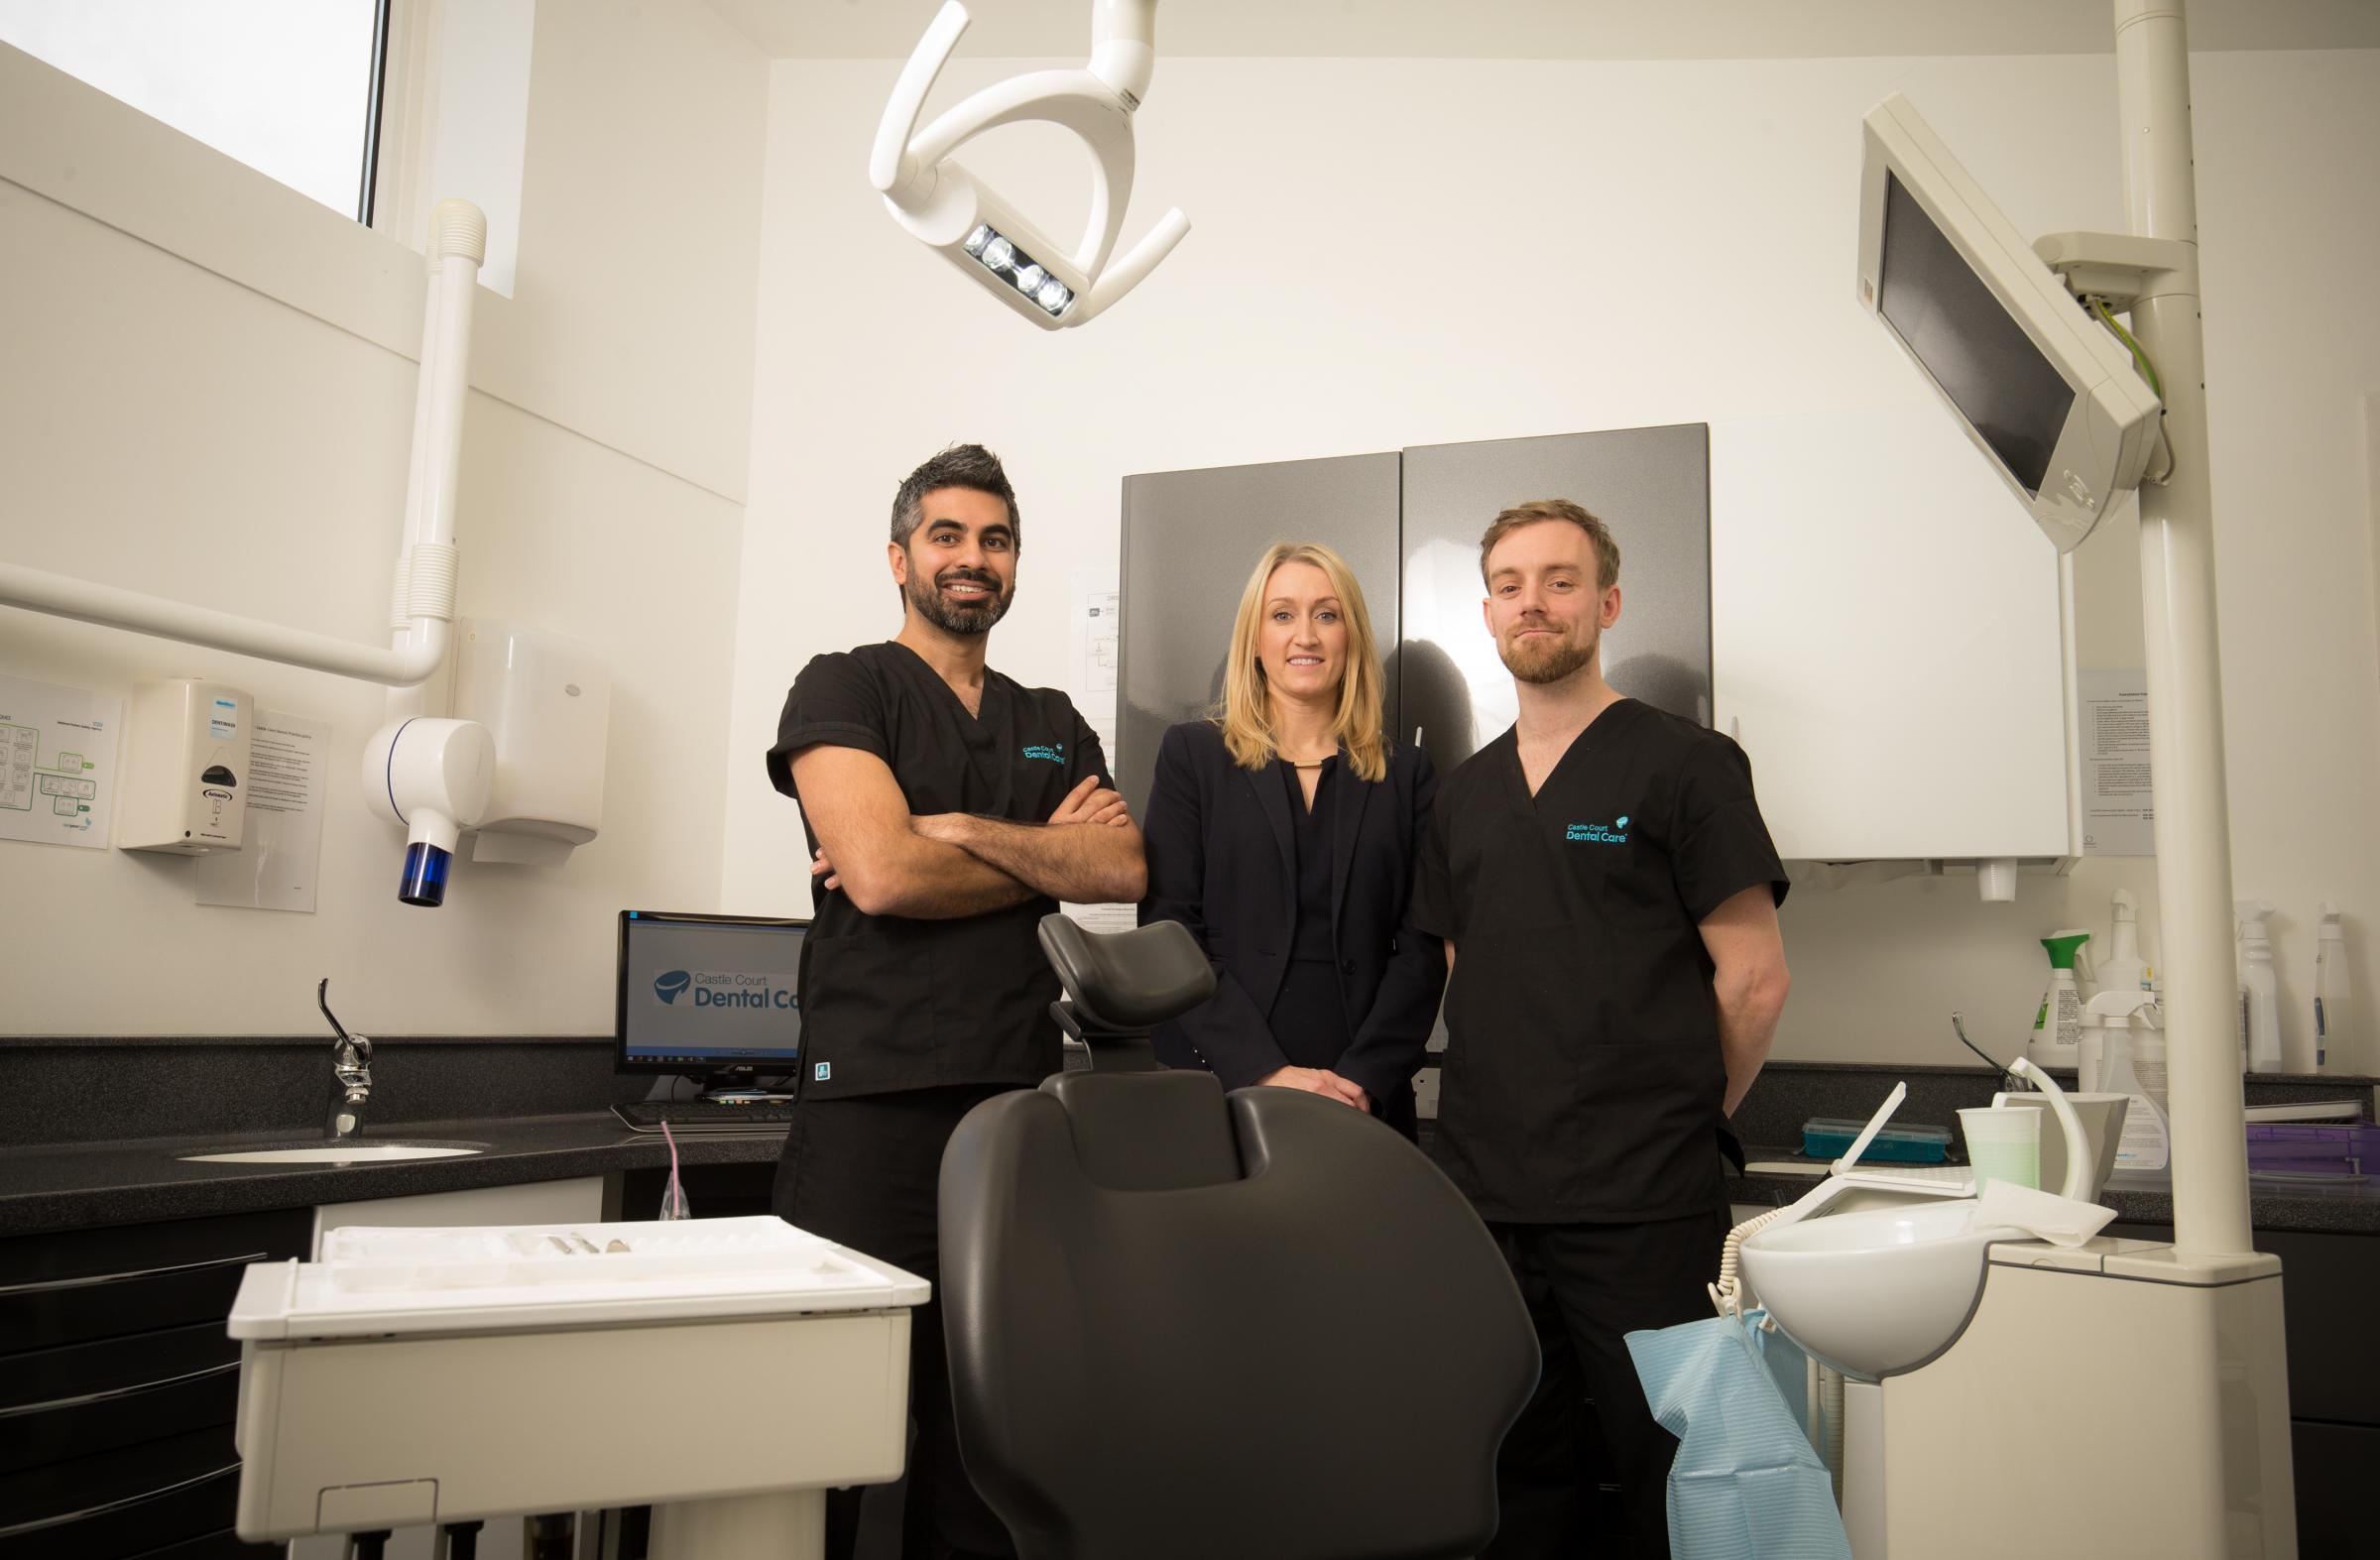 Suzanne Rees, Lloyds Bank Commercial Banking Healthcare Relationship Manager, with Principle Dentists Baharat Nagrani (left) and Eifion Roberts (right)